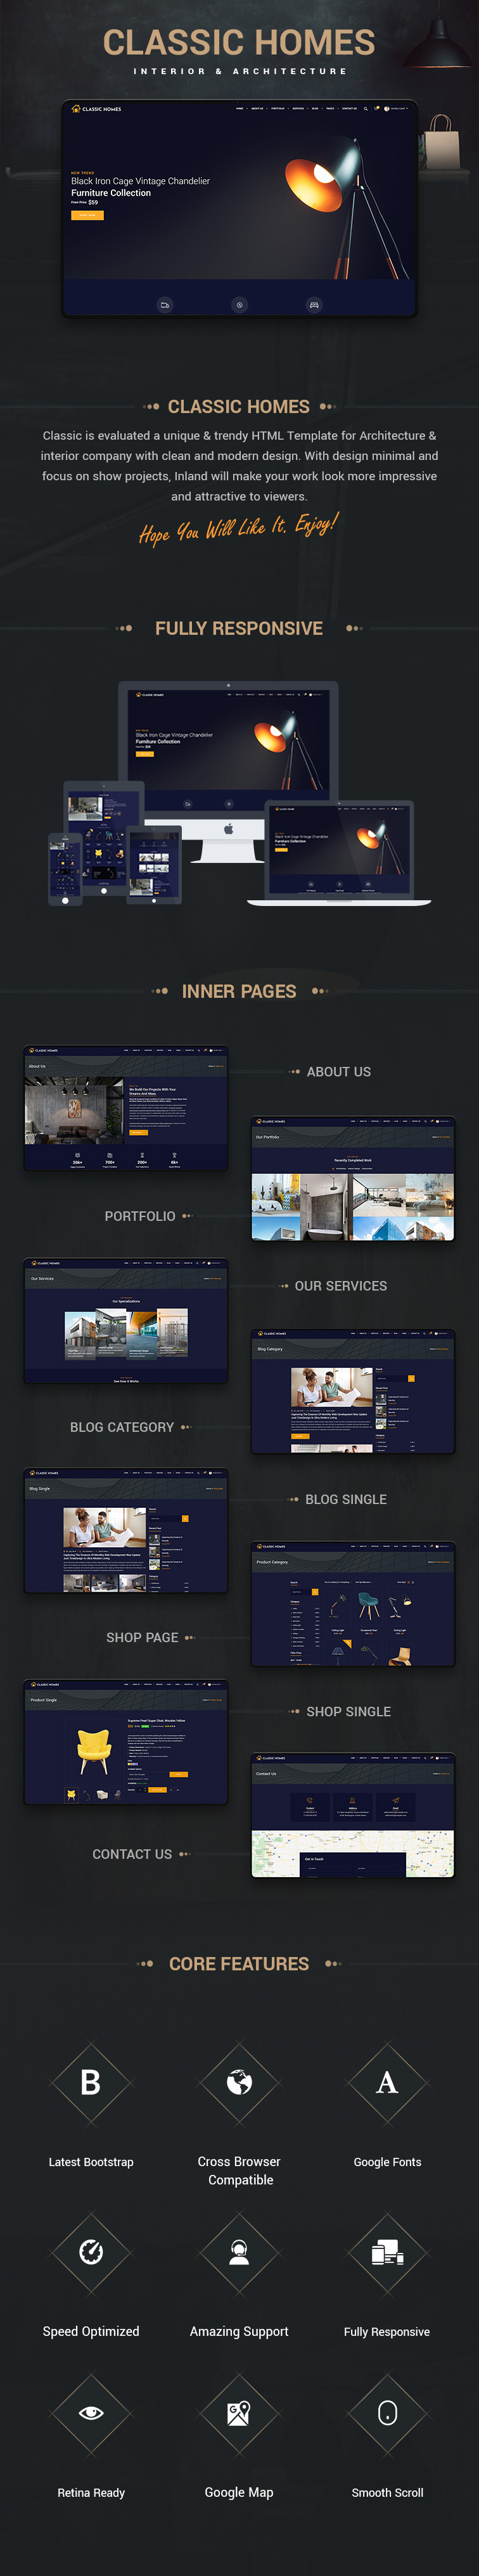 Furniture Store/Shop HTML Website Templates